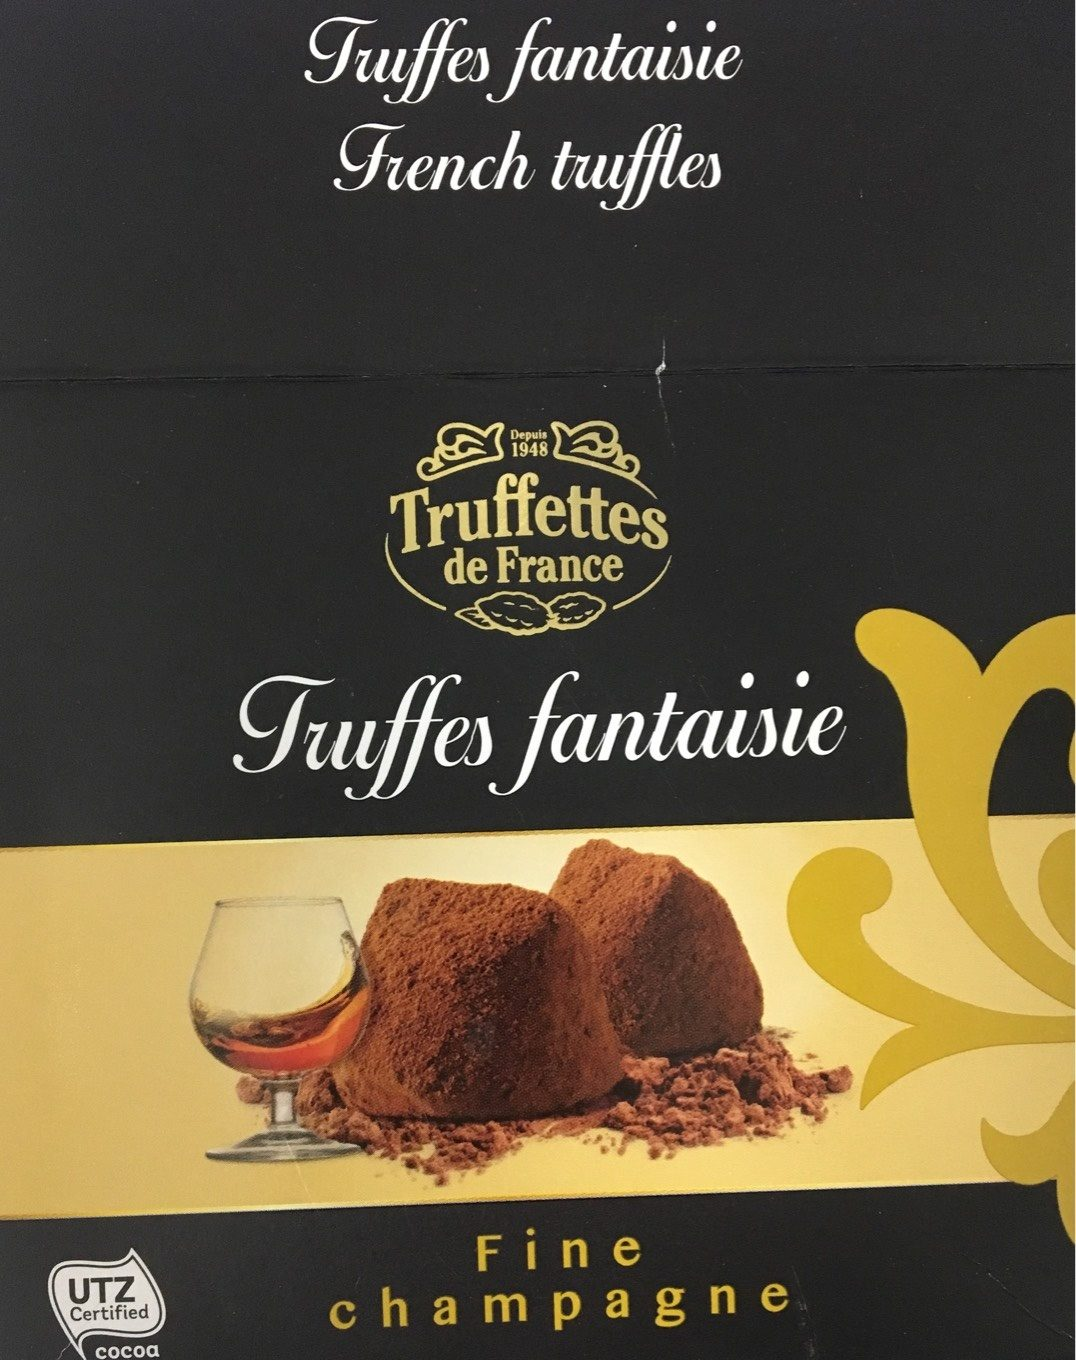 Chocmod Truffettes De France Fine Champagne French Truffles 200 G (pack of 4) - Product